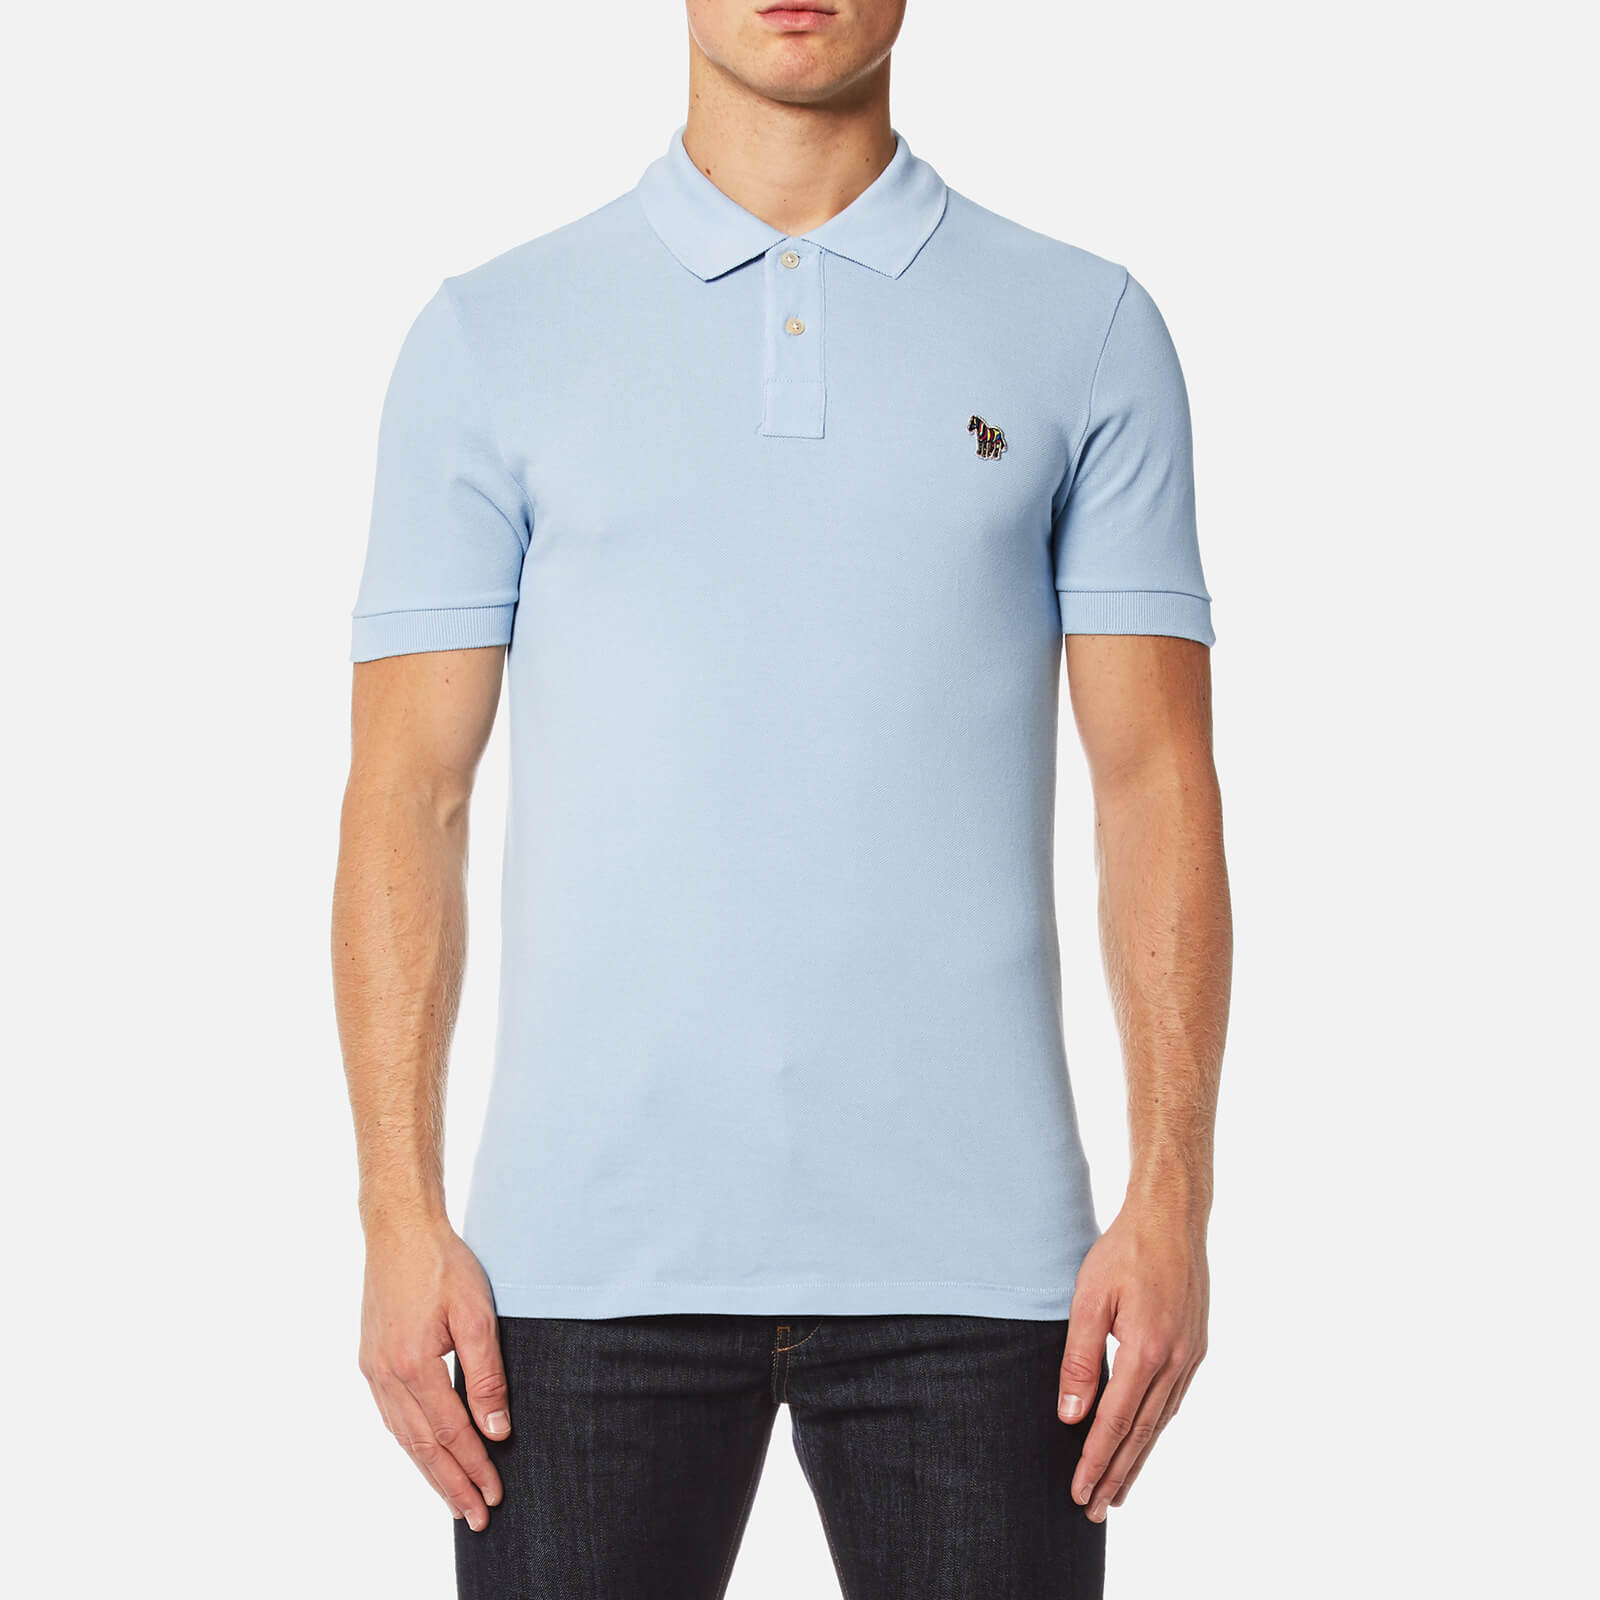 927e4d51a PS by Paul Smith Men s Zebra Logo Polo Shirt - Sky - Free UK Delivery over  £50